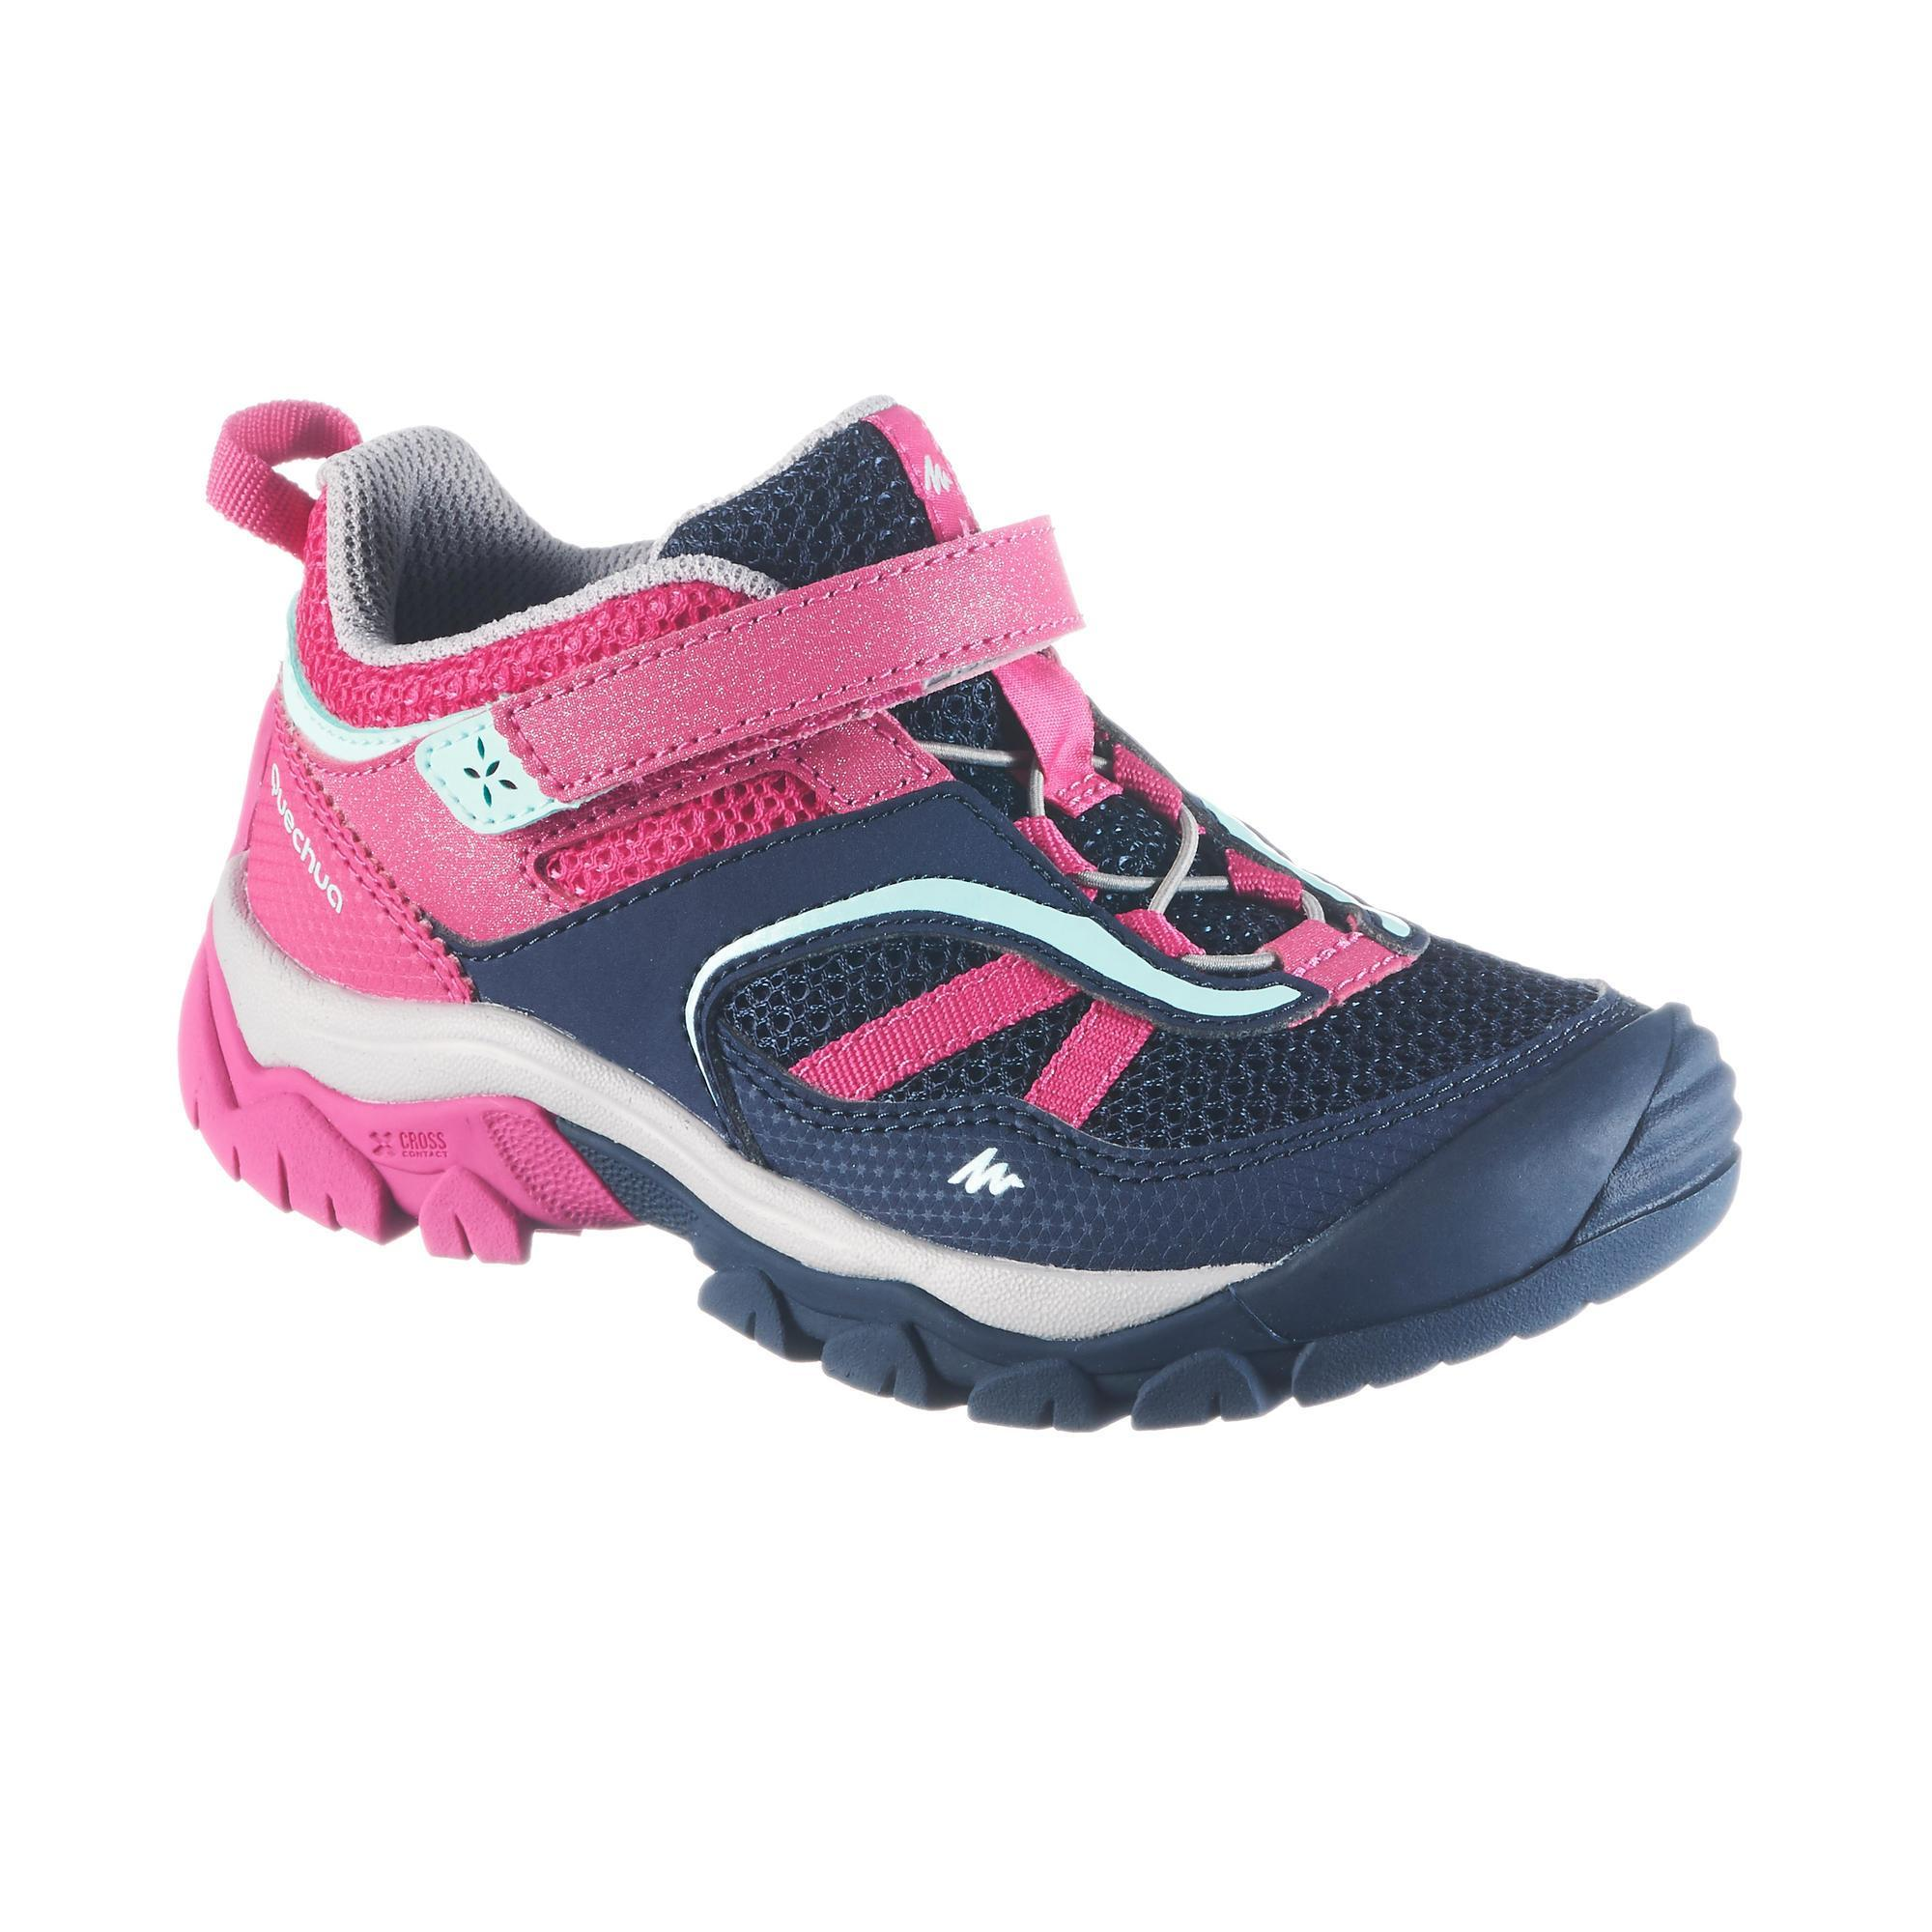 Crossrock Kid Girls Mountain Hiking Shoes Blue Pink